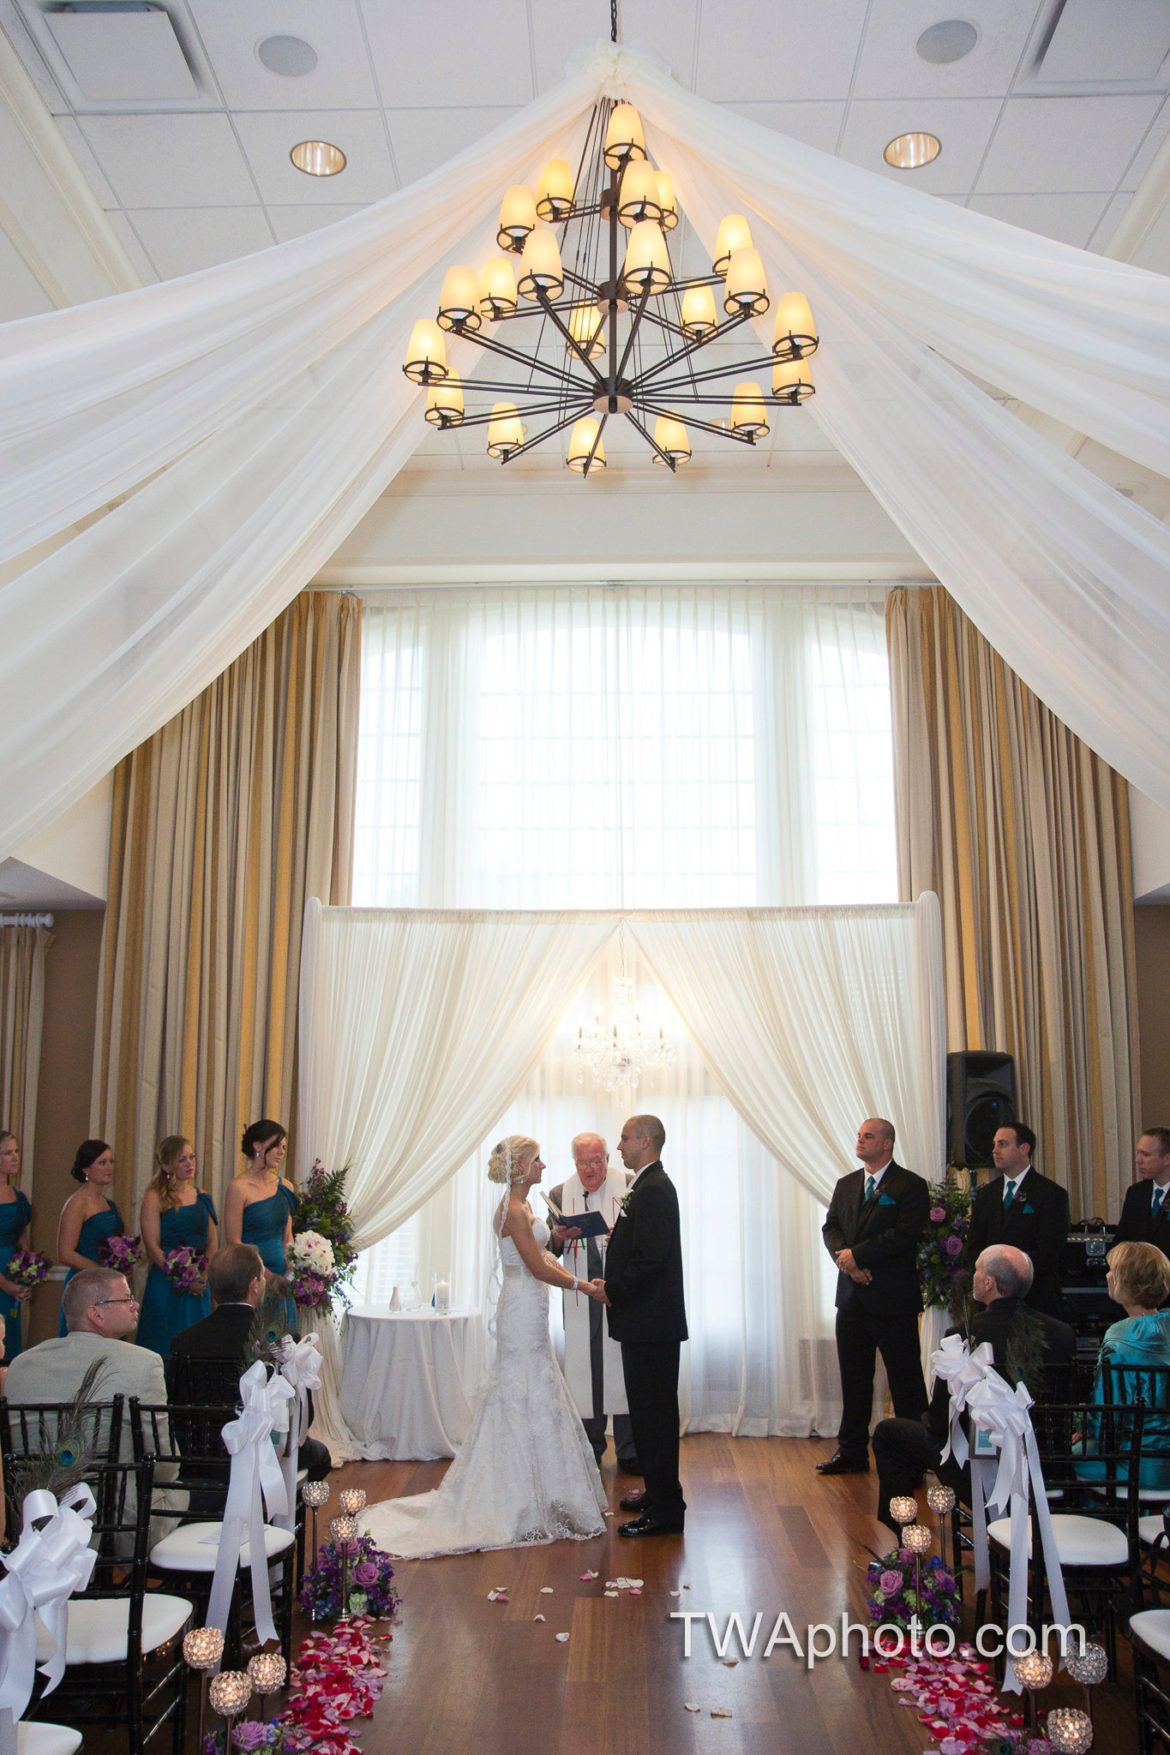 Elegant_Event_Lighting_Chicago_Arrowhead_Golf_Club_Wheaton_Wedding_Crystal_Chandelier_Ivory_Bridal_Arch_Ceremony_Ceiling_Drapes